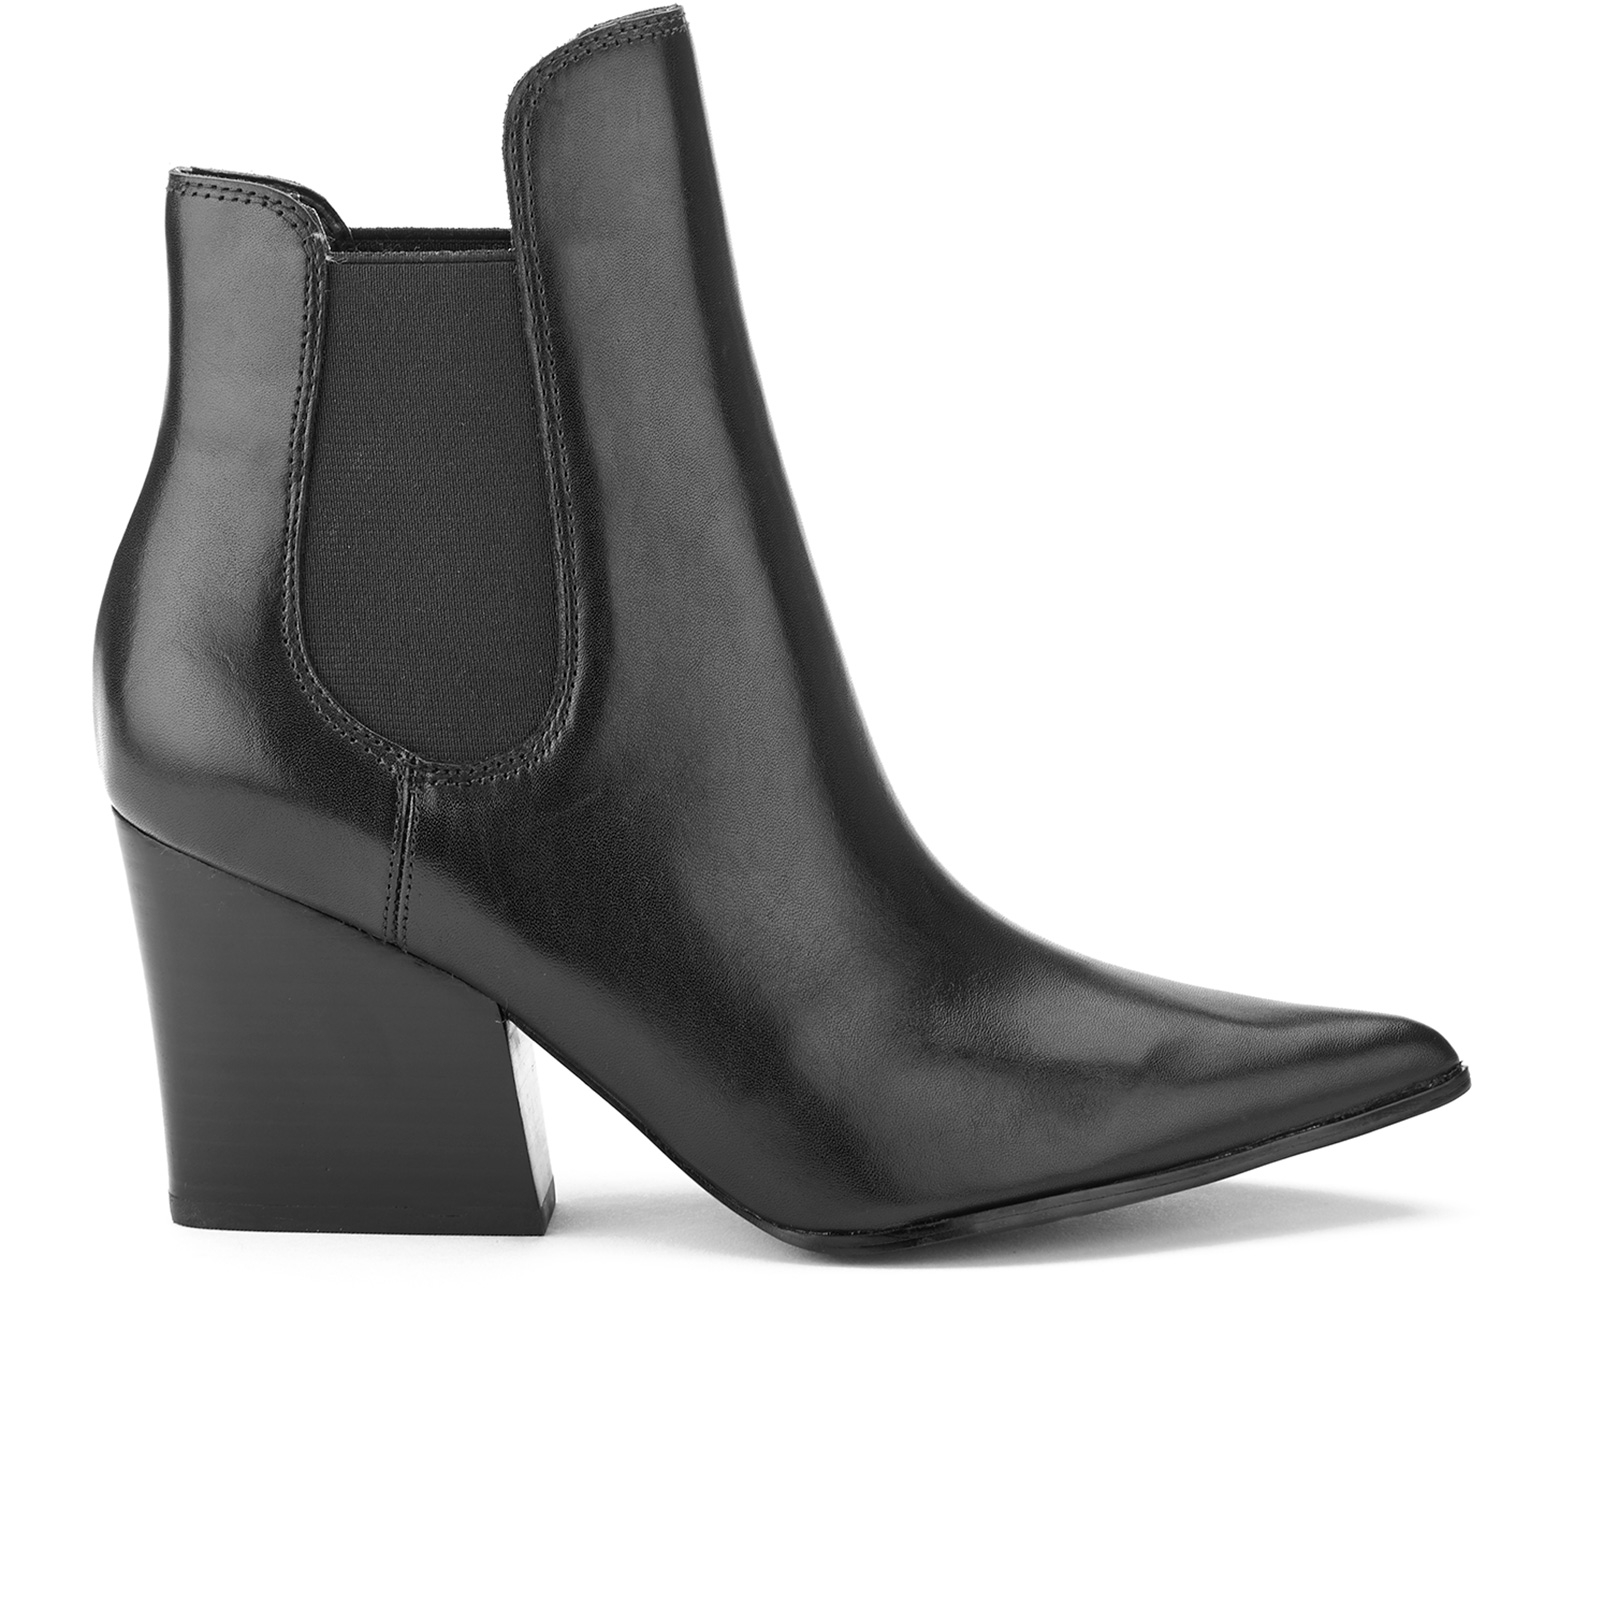 b70a7268c Kendall + Kylie Women's Finley Leather Heeled Chelsea Boots - Black | FREE  UK Delivery | Allsole